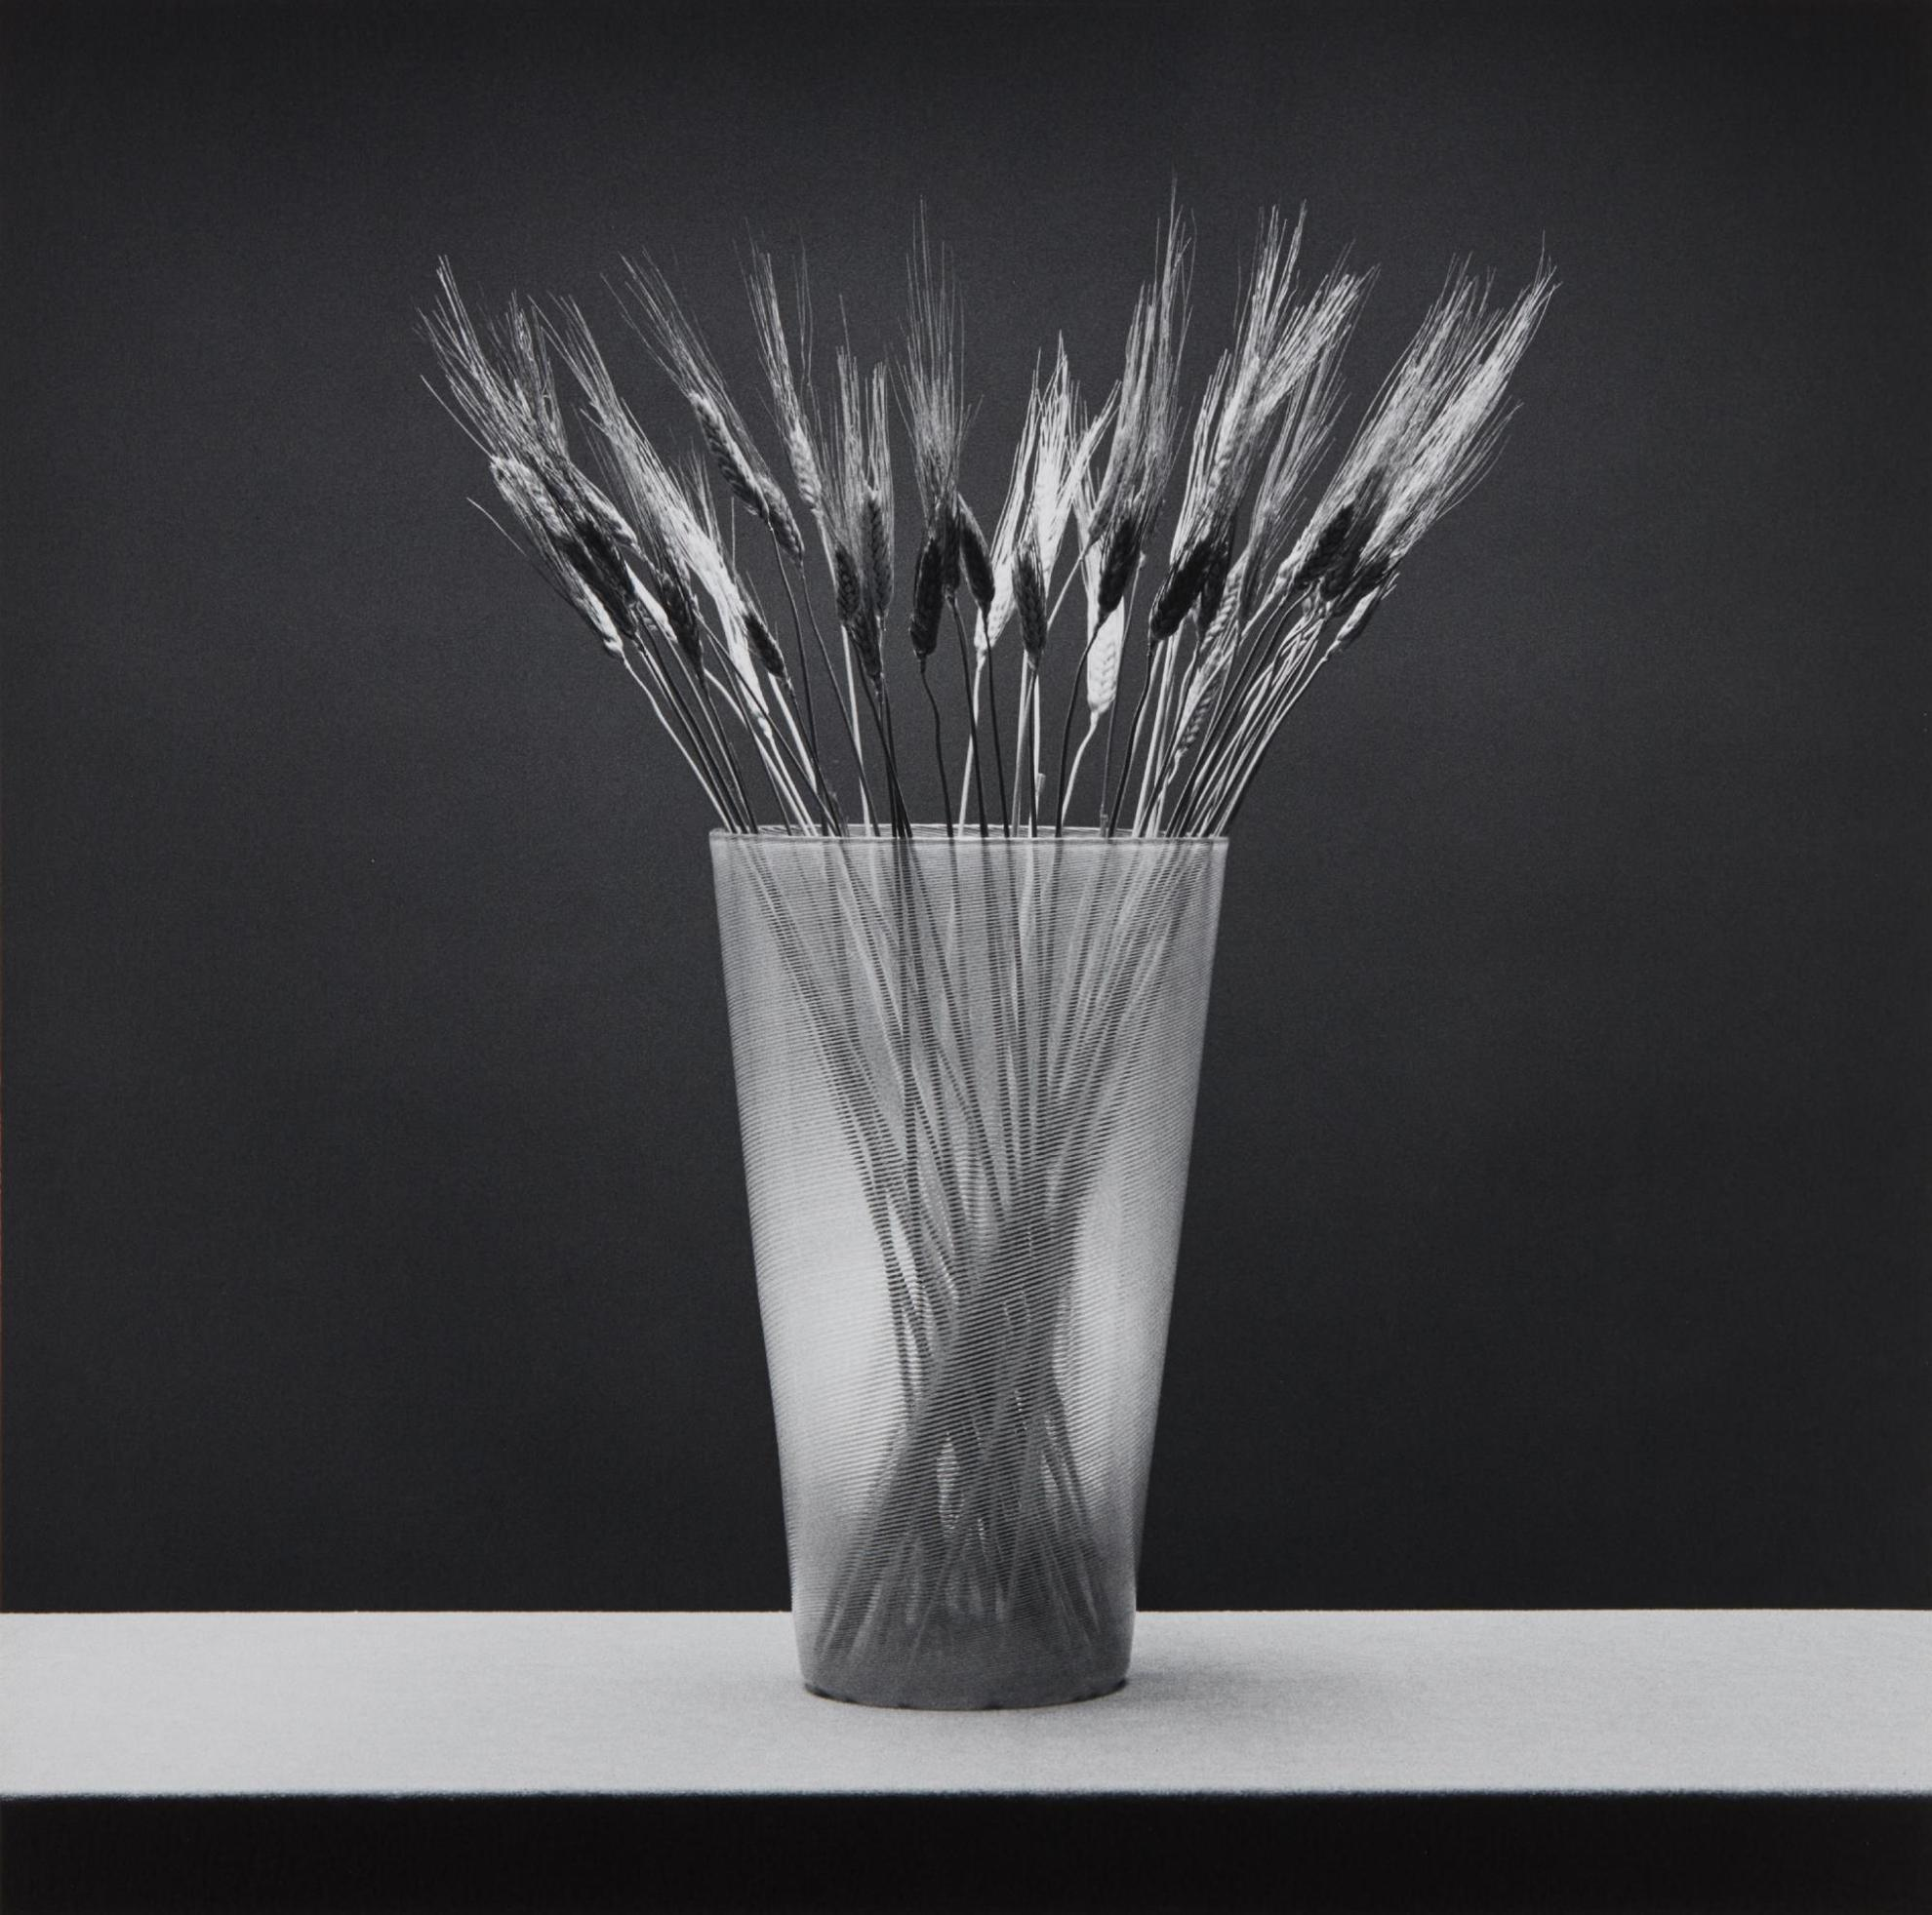 Robert Mapplethorpe-Wheat-1985